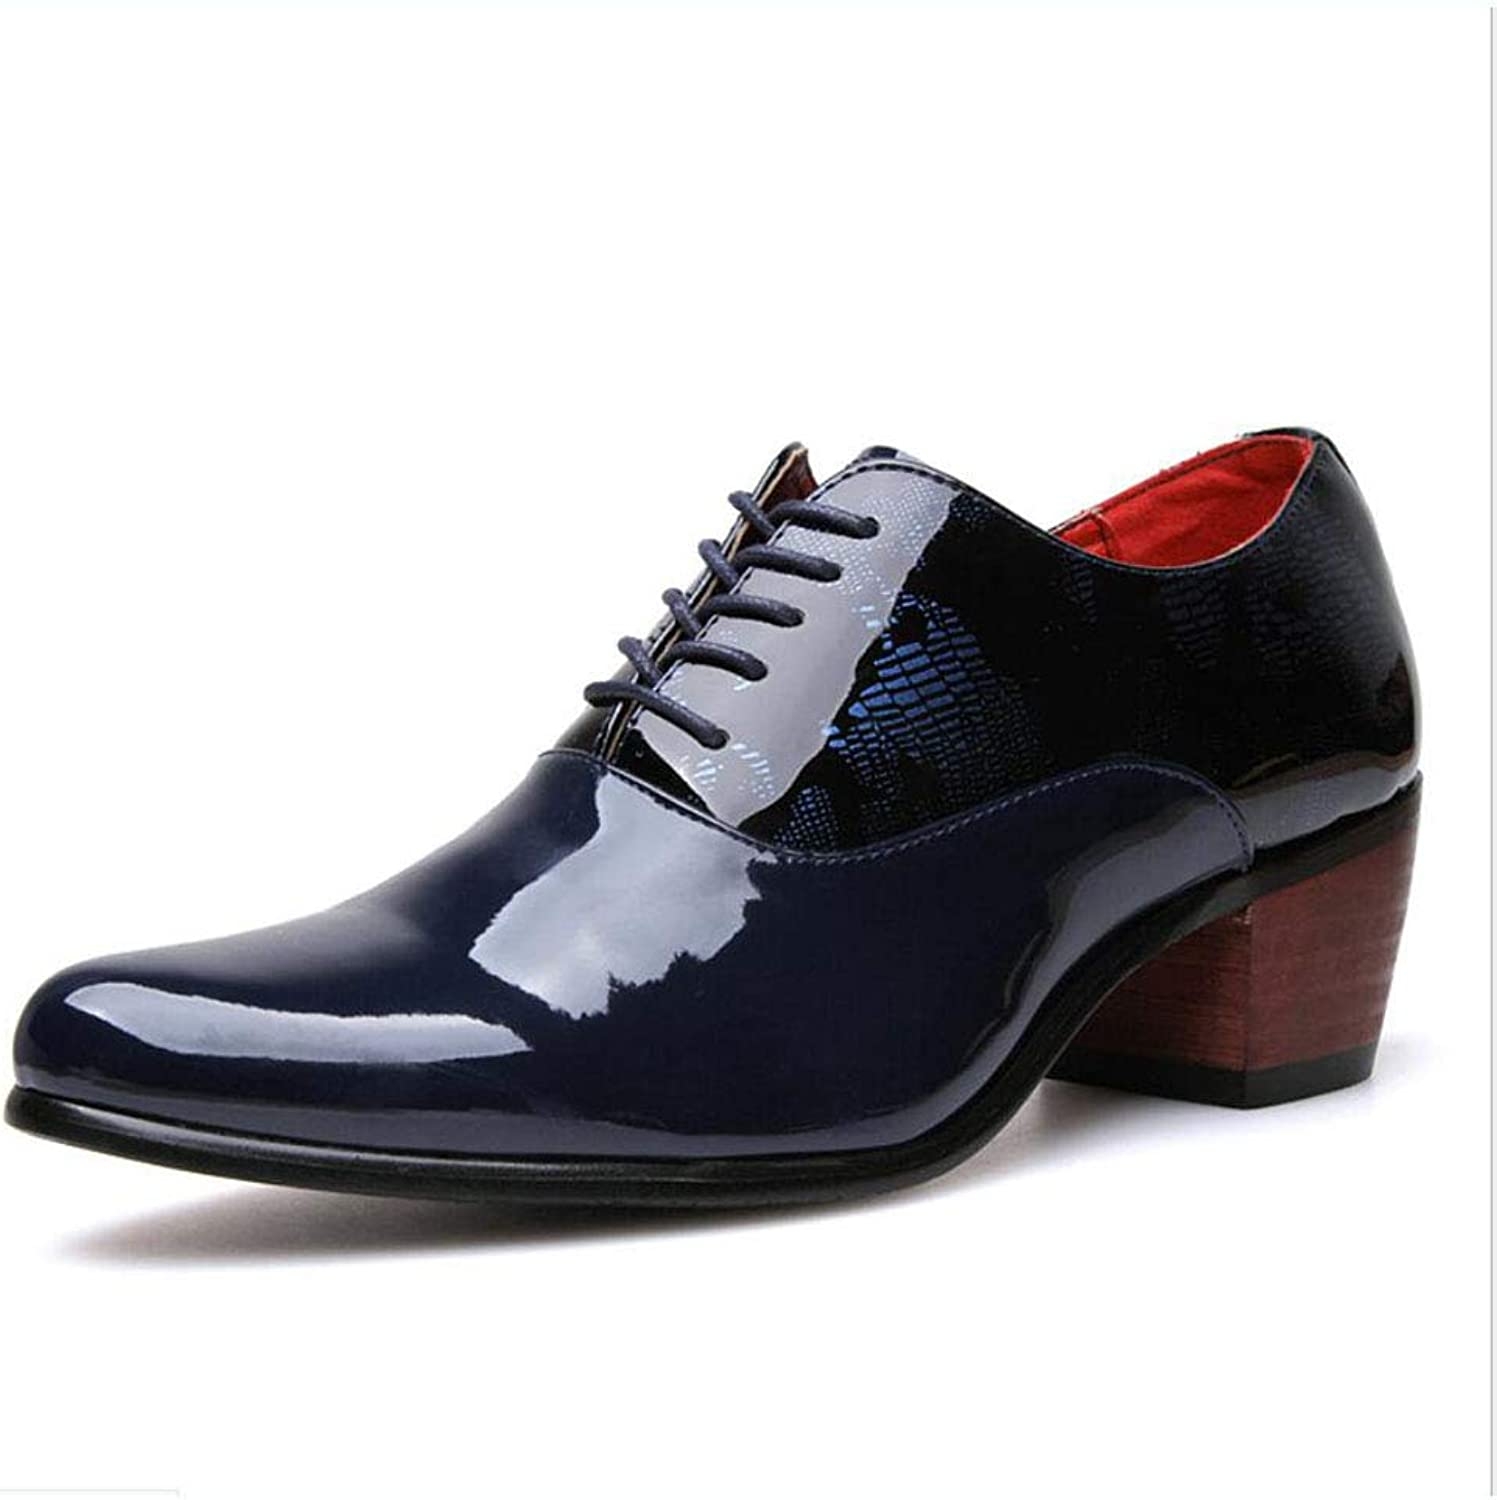 Y-H Men's shoes Leather Spring Fall Oxfords Lace Up Business shoes Pointed Casual shoes Hairstylist Heighten Tide shoesBlack Dark bluee Party & Evening (color   A, Size   40)